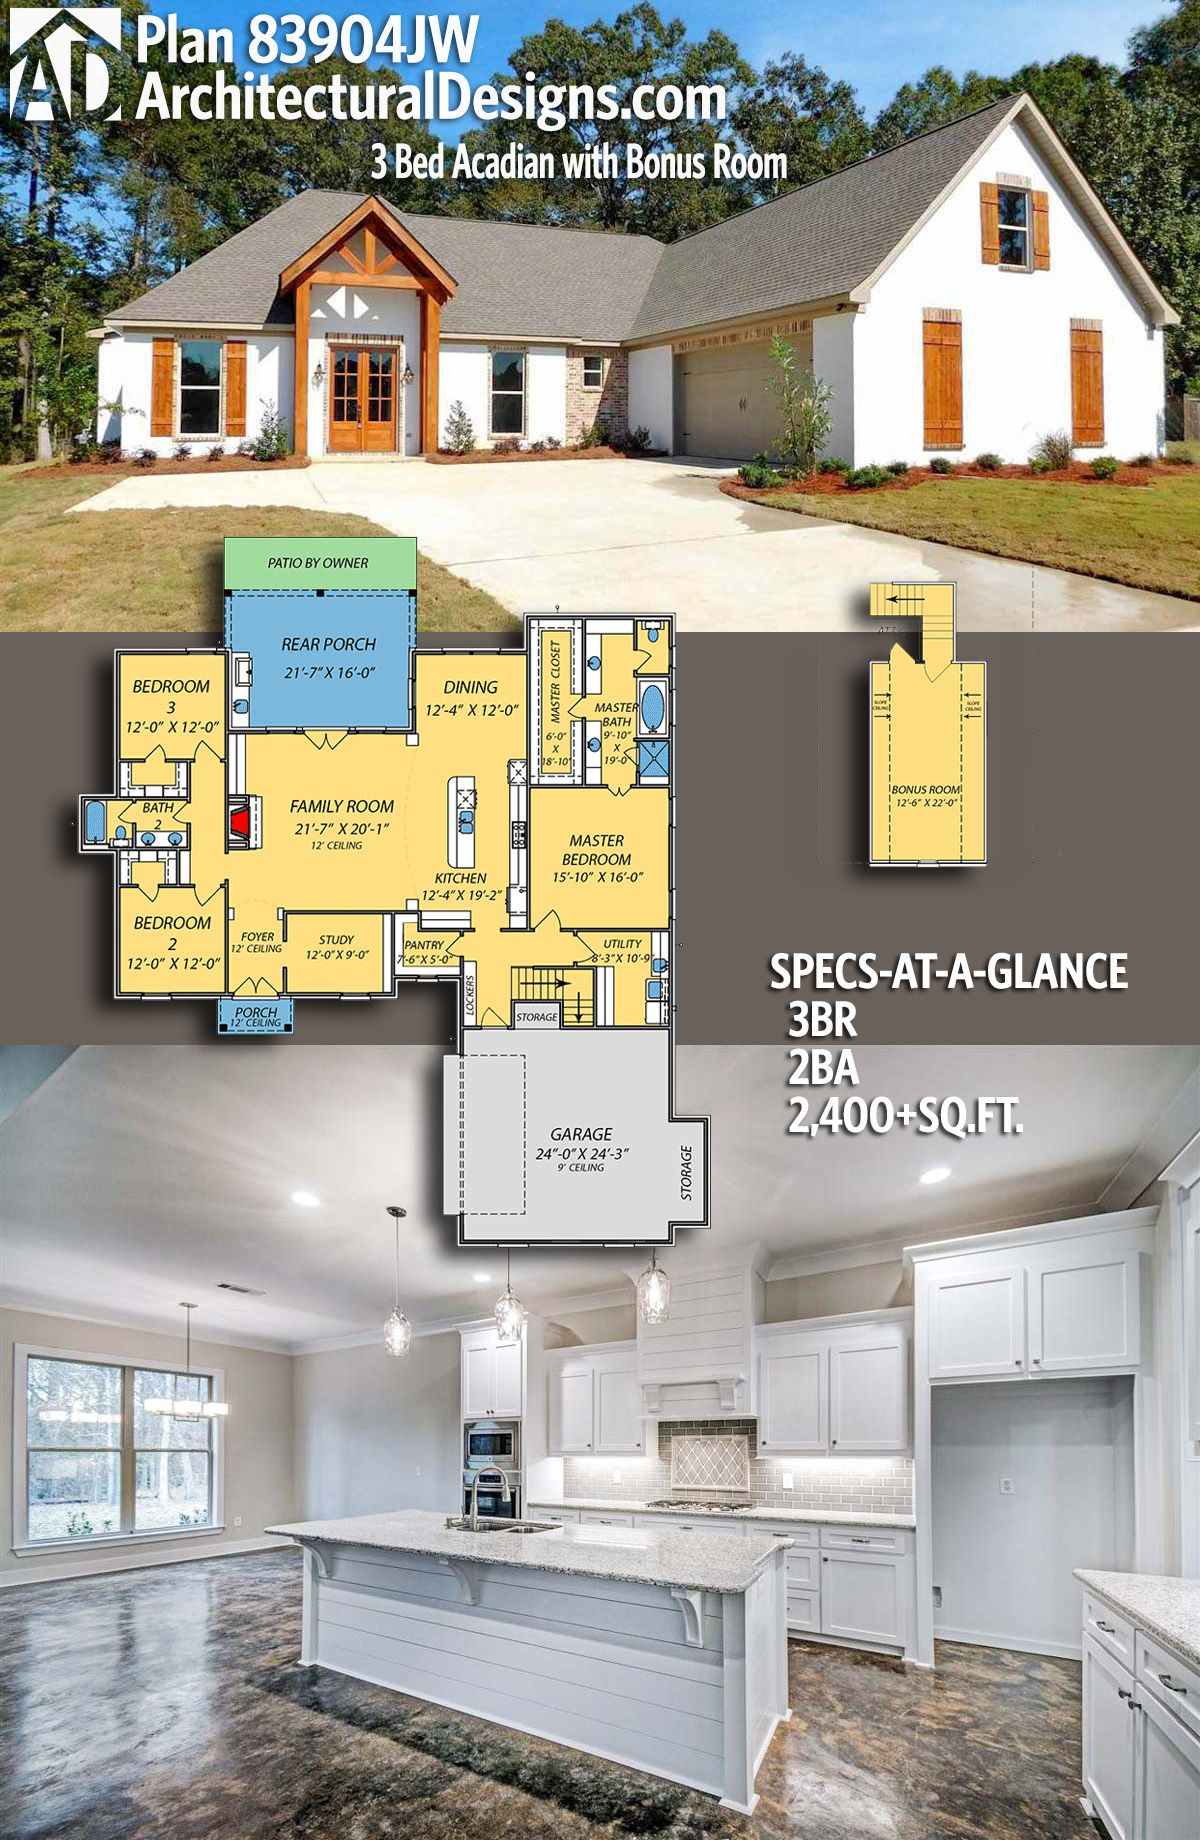 Plan 83904jw exclusive acadian house plan with bonus room for Acadian house plans with bonus room